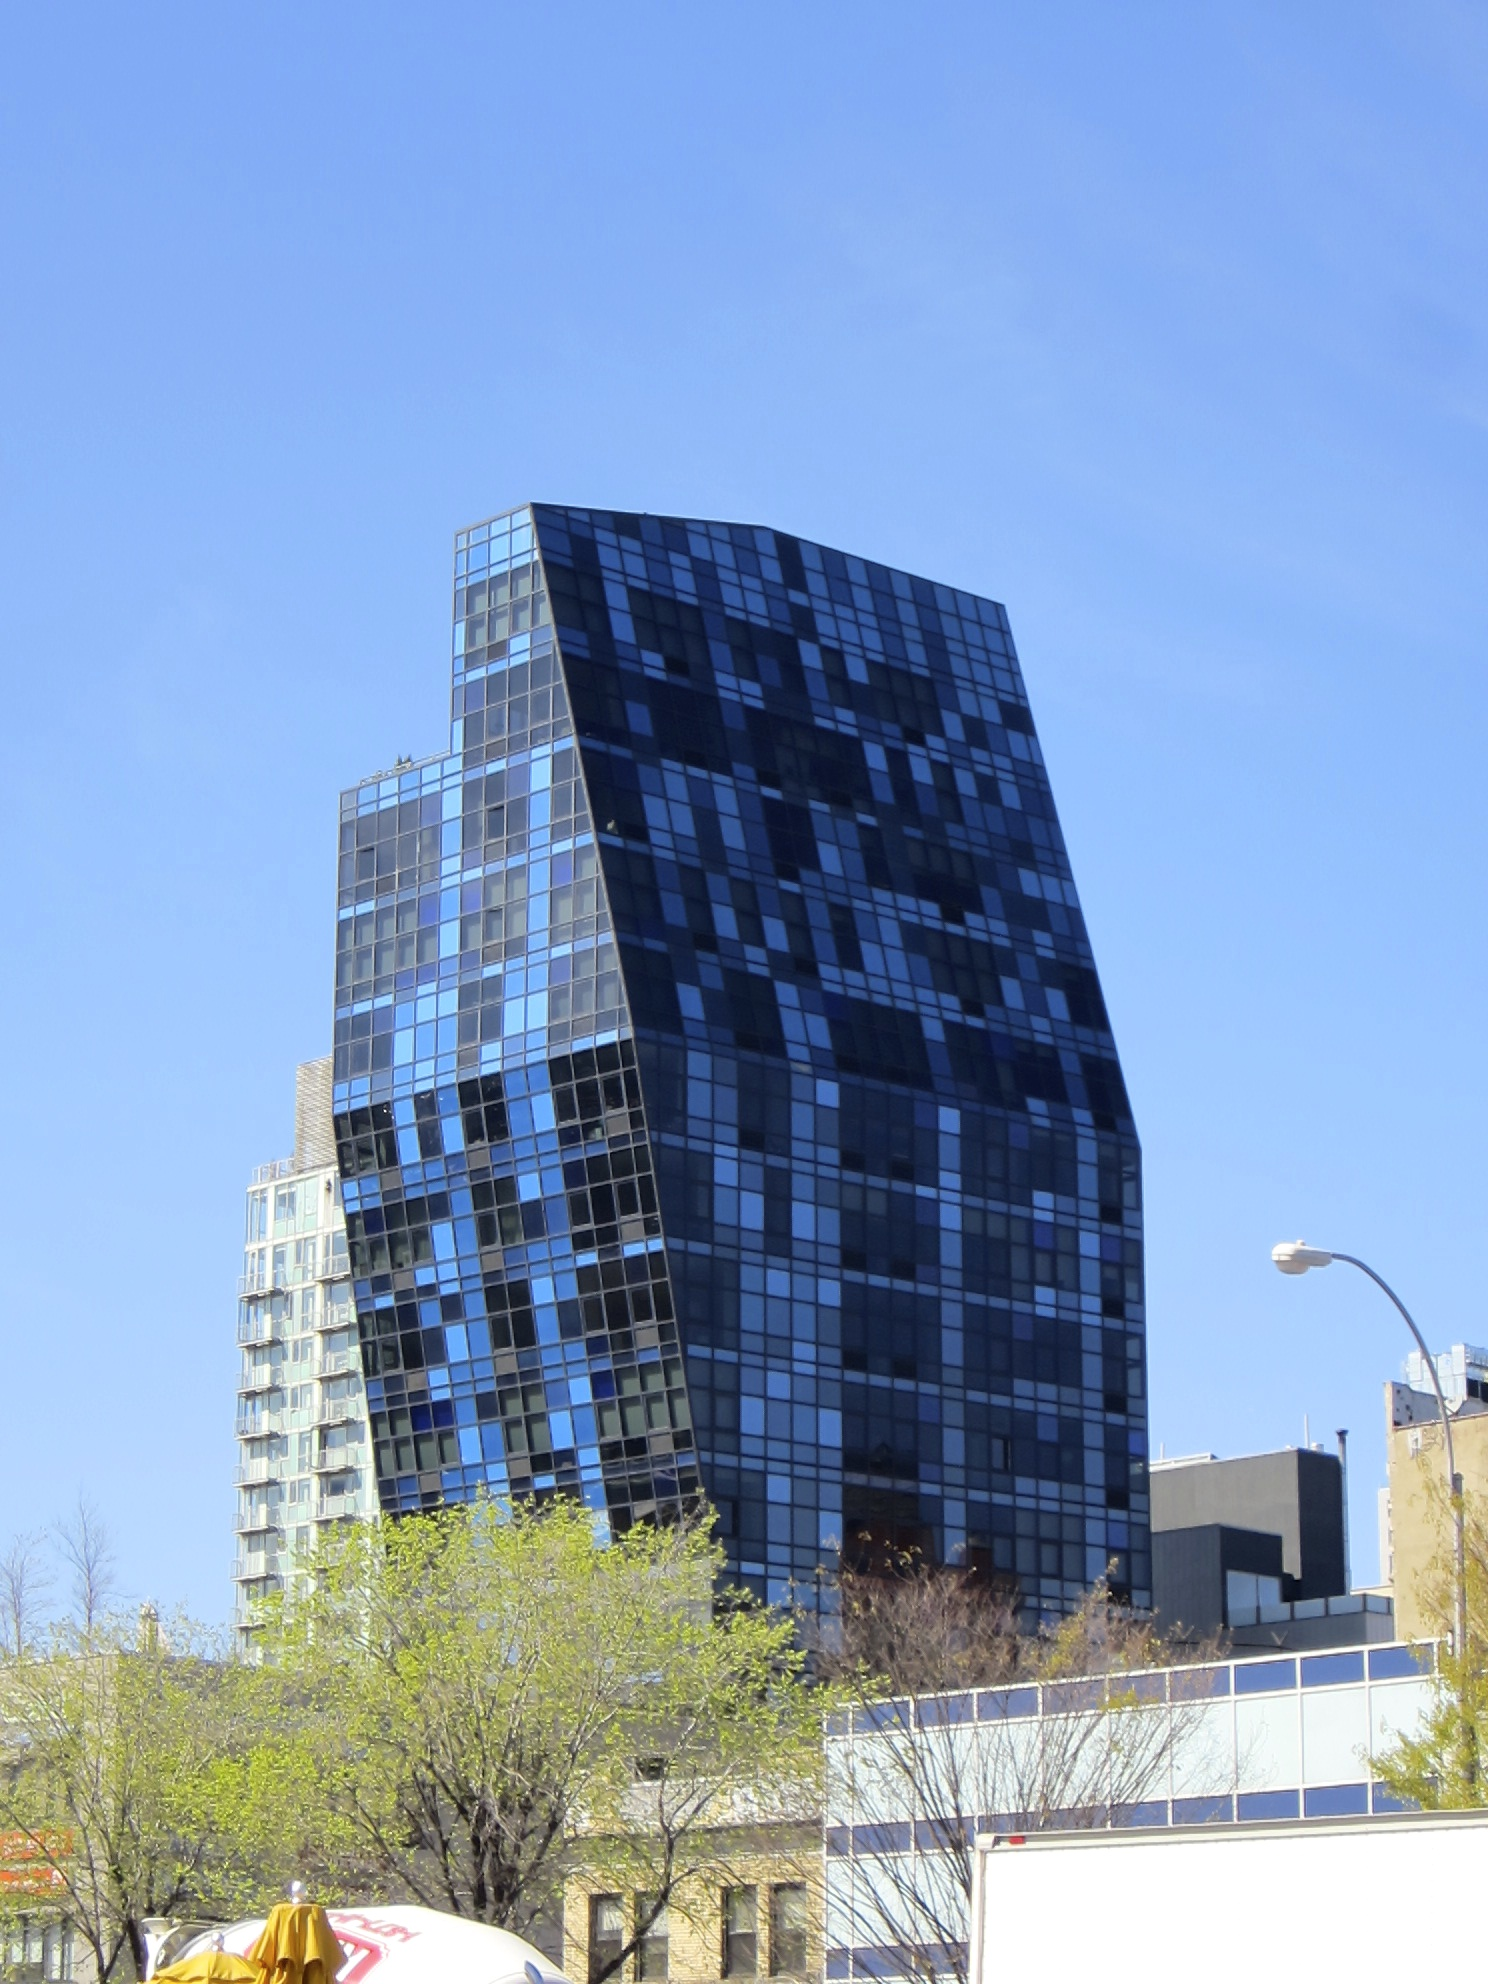 Blue,  the dynamic architecture of  Lower East Side . Photo by Ritu Saheb, Architect, AIA